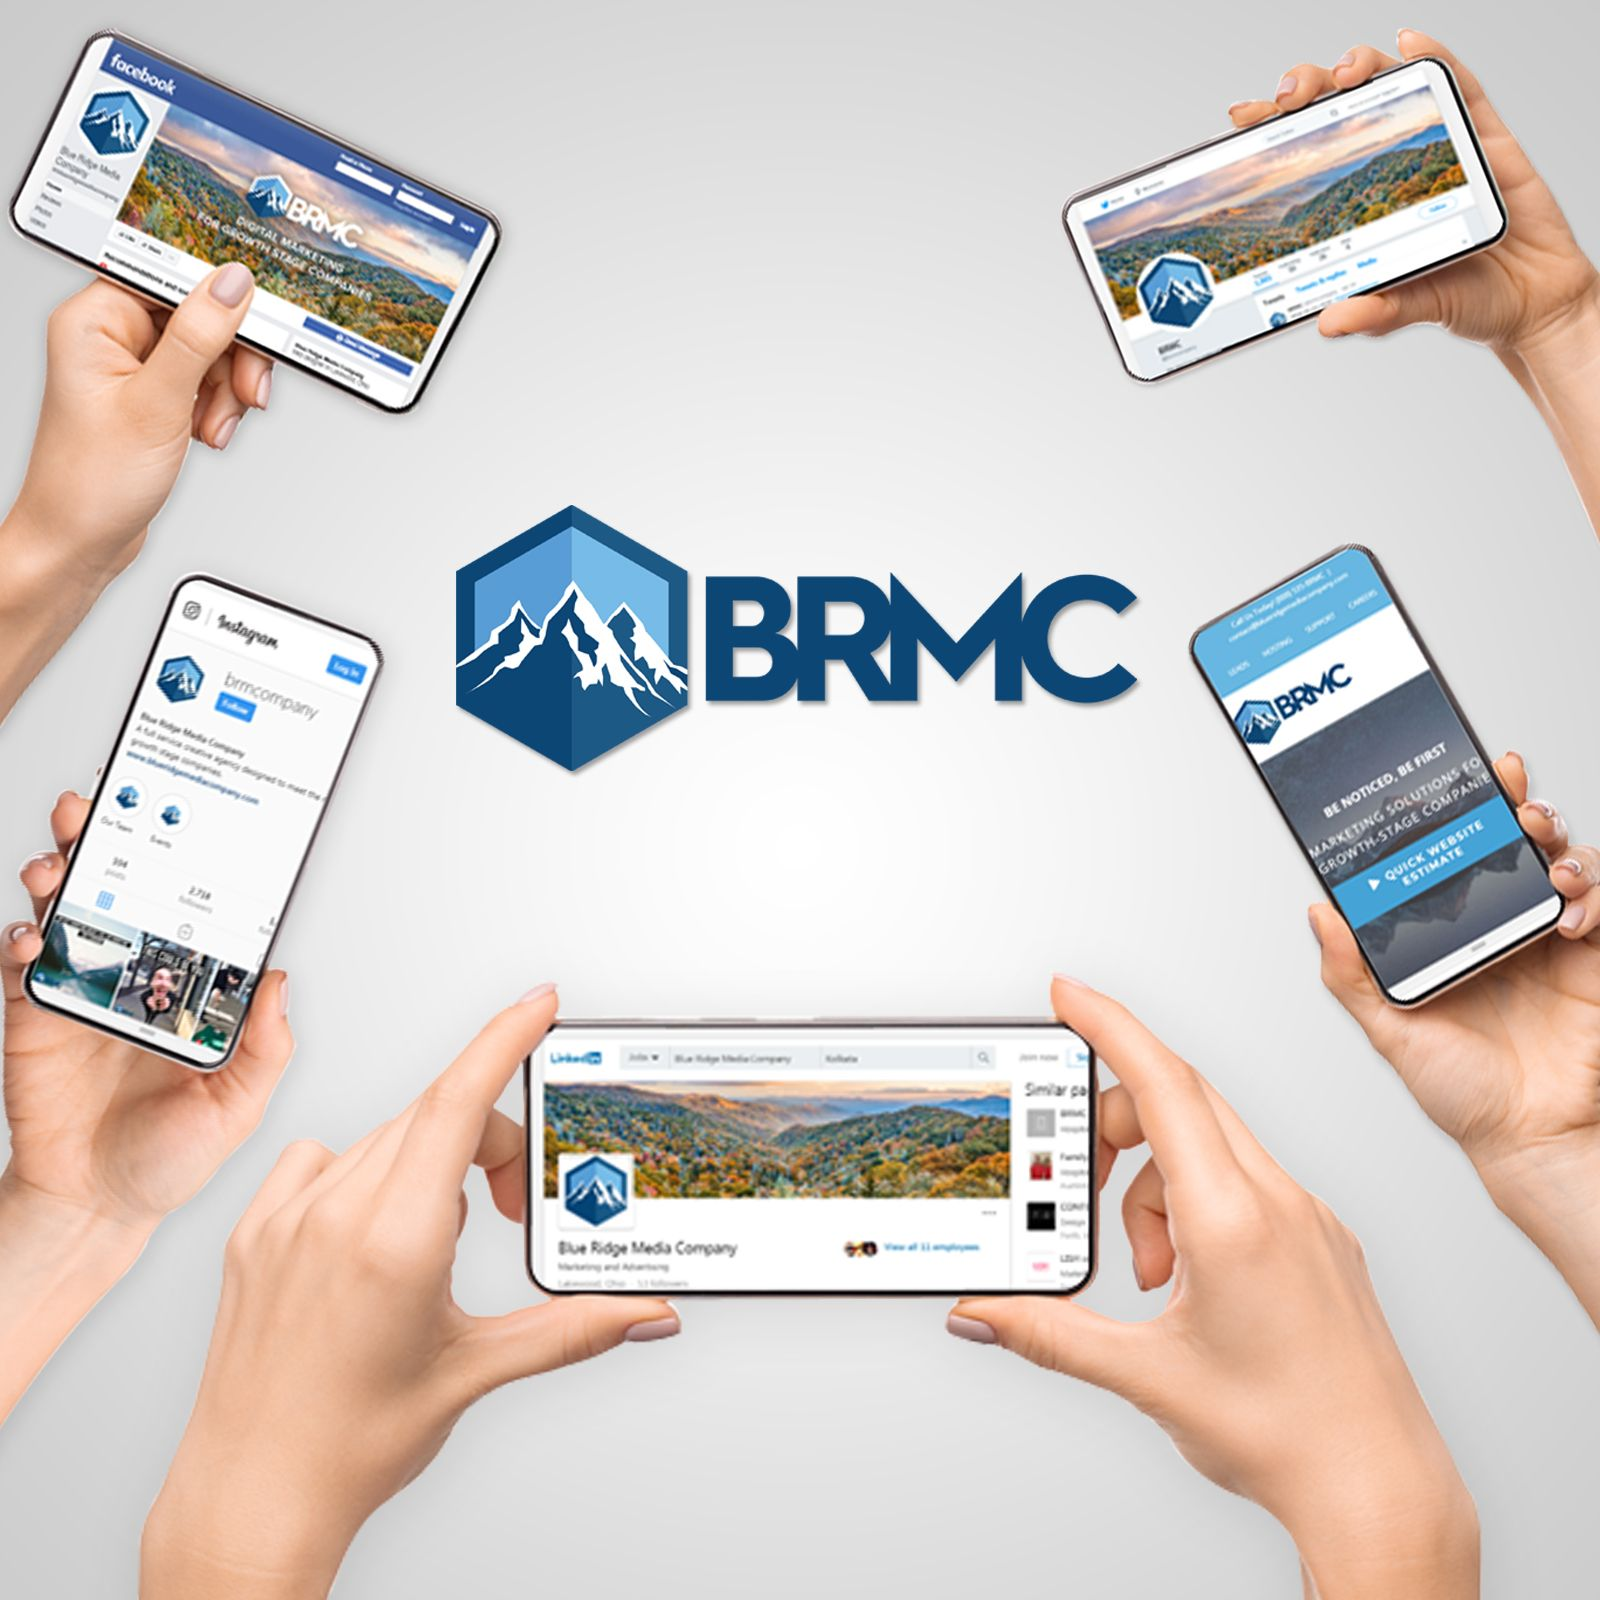 Hands holding phones showing different BRMC webpages with the BRMC logo in the center